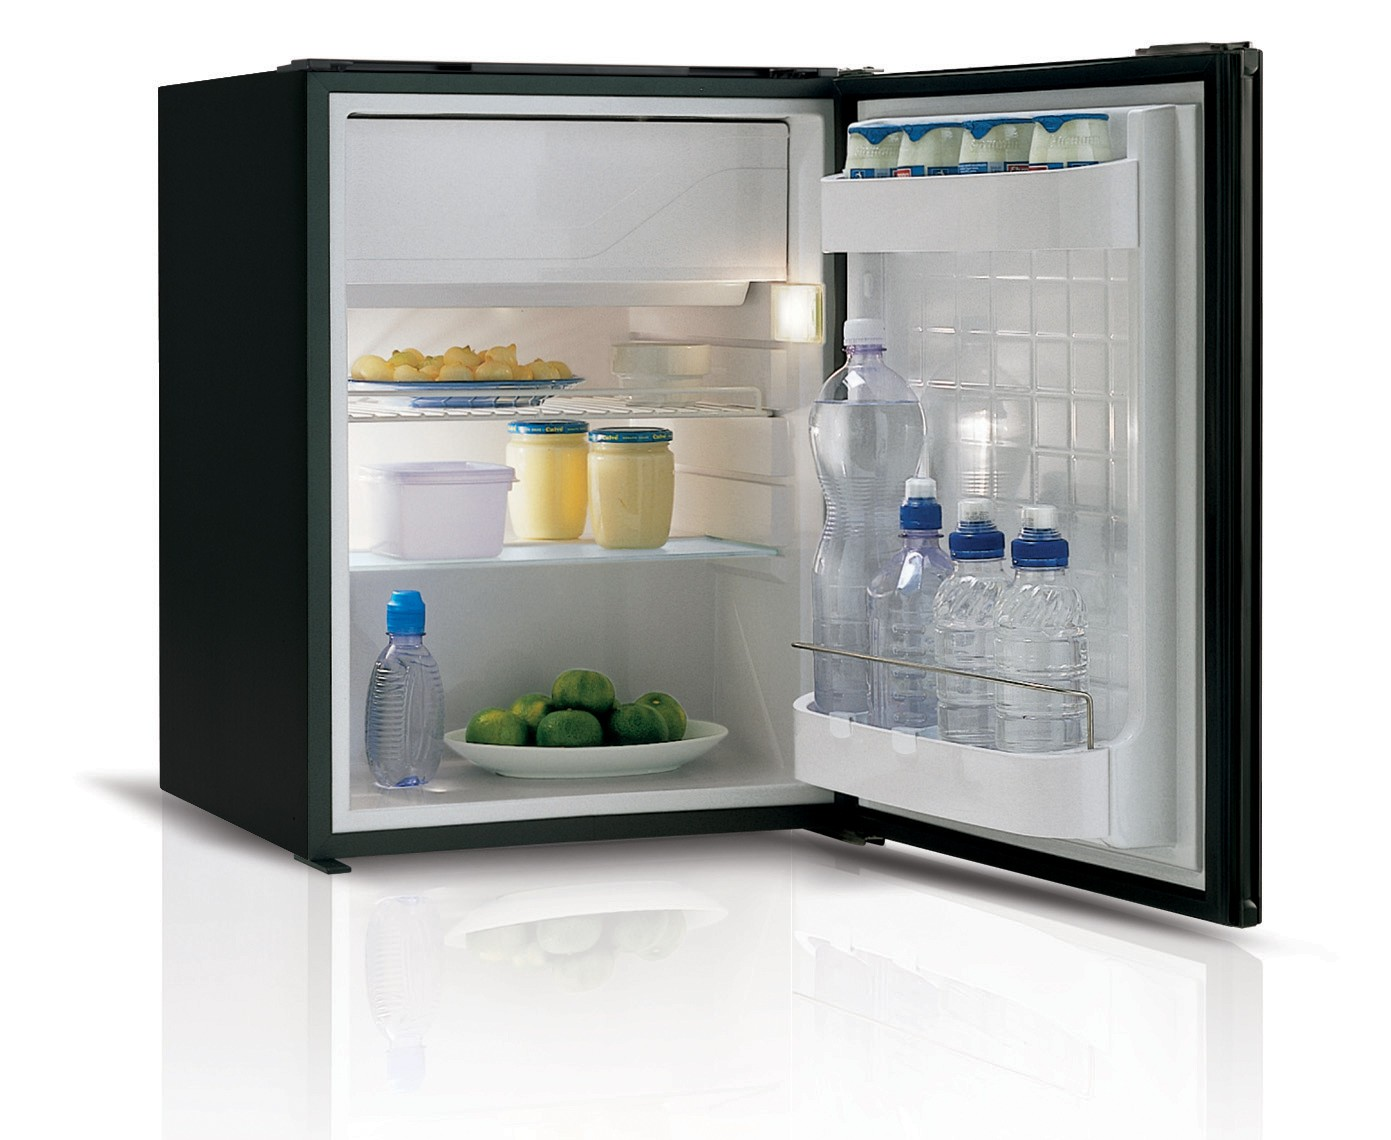 Vitrifrigo C60i 12V or 24V Fridge Freezer - C60 ON SALE NOW